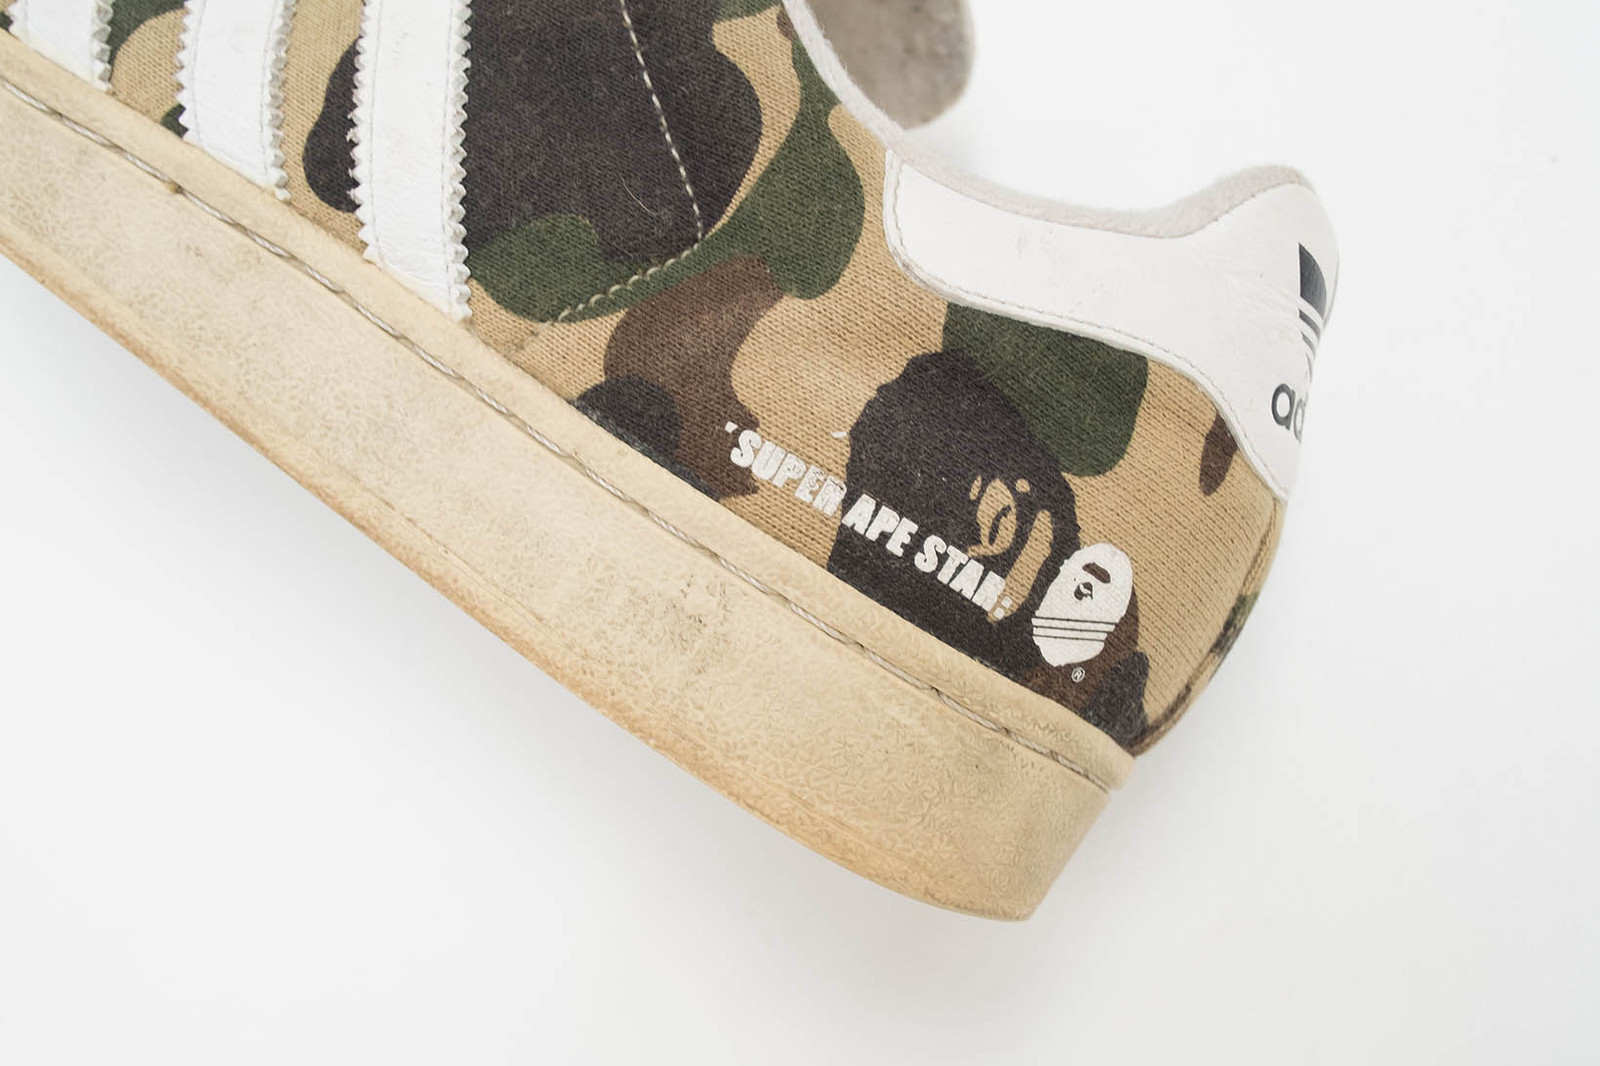 bape supreme james jebbia james lavelle nigo